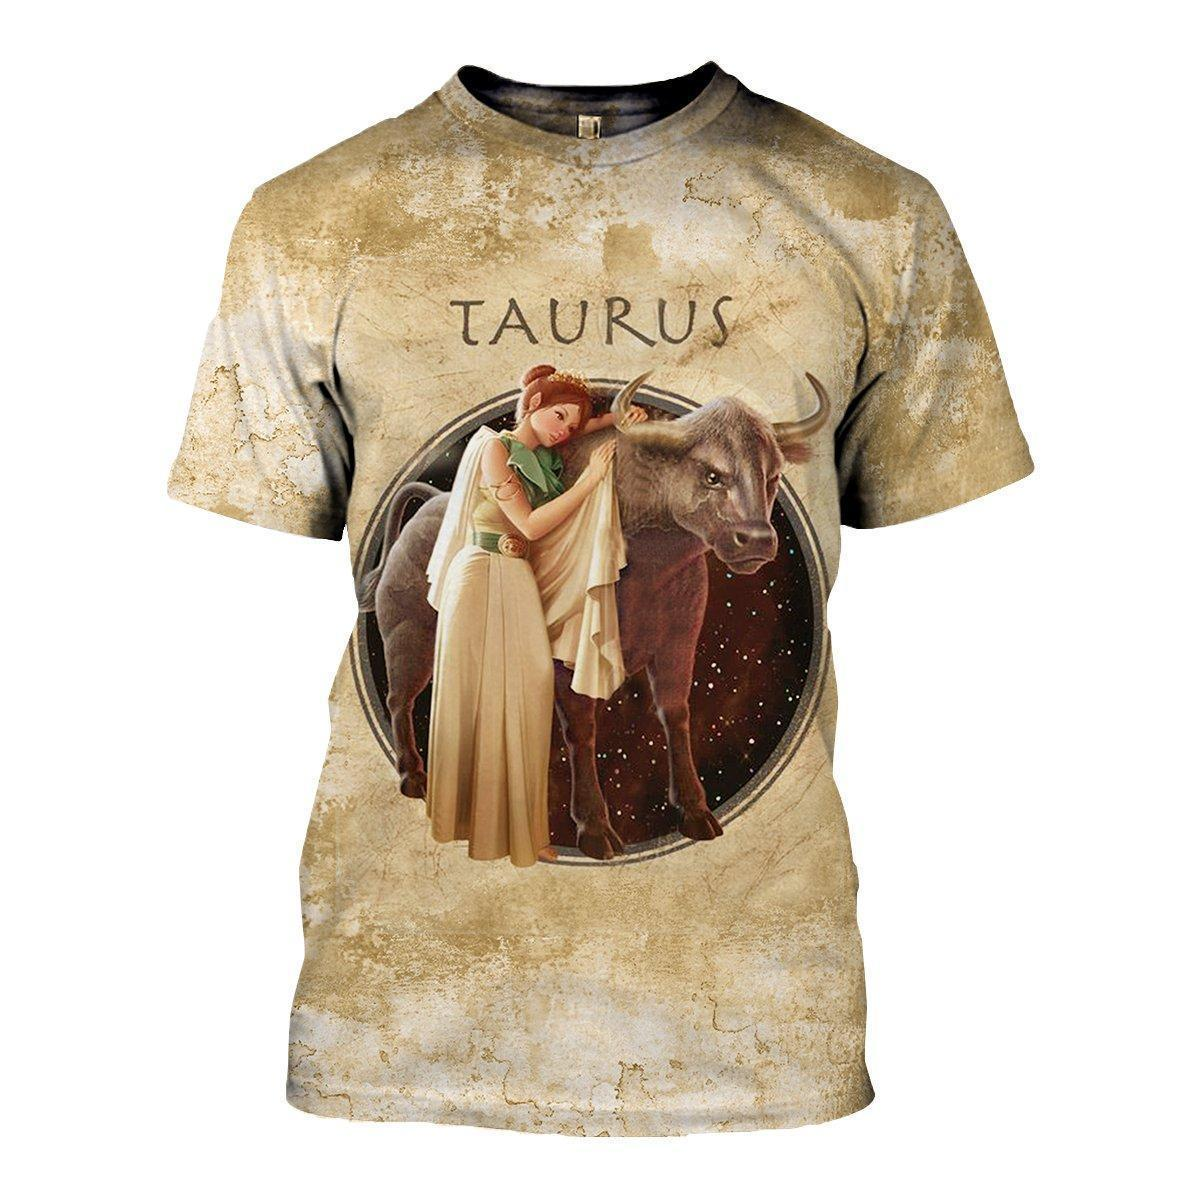 3D ALL OVER PRINTED TAURUS ZODIAC T SHIRT HOODIE NTH150848-Apparel-NTH-T-Shirt-S-Vibe Cosy™